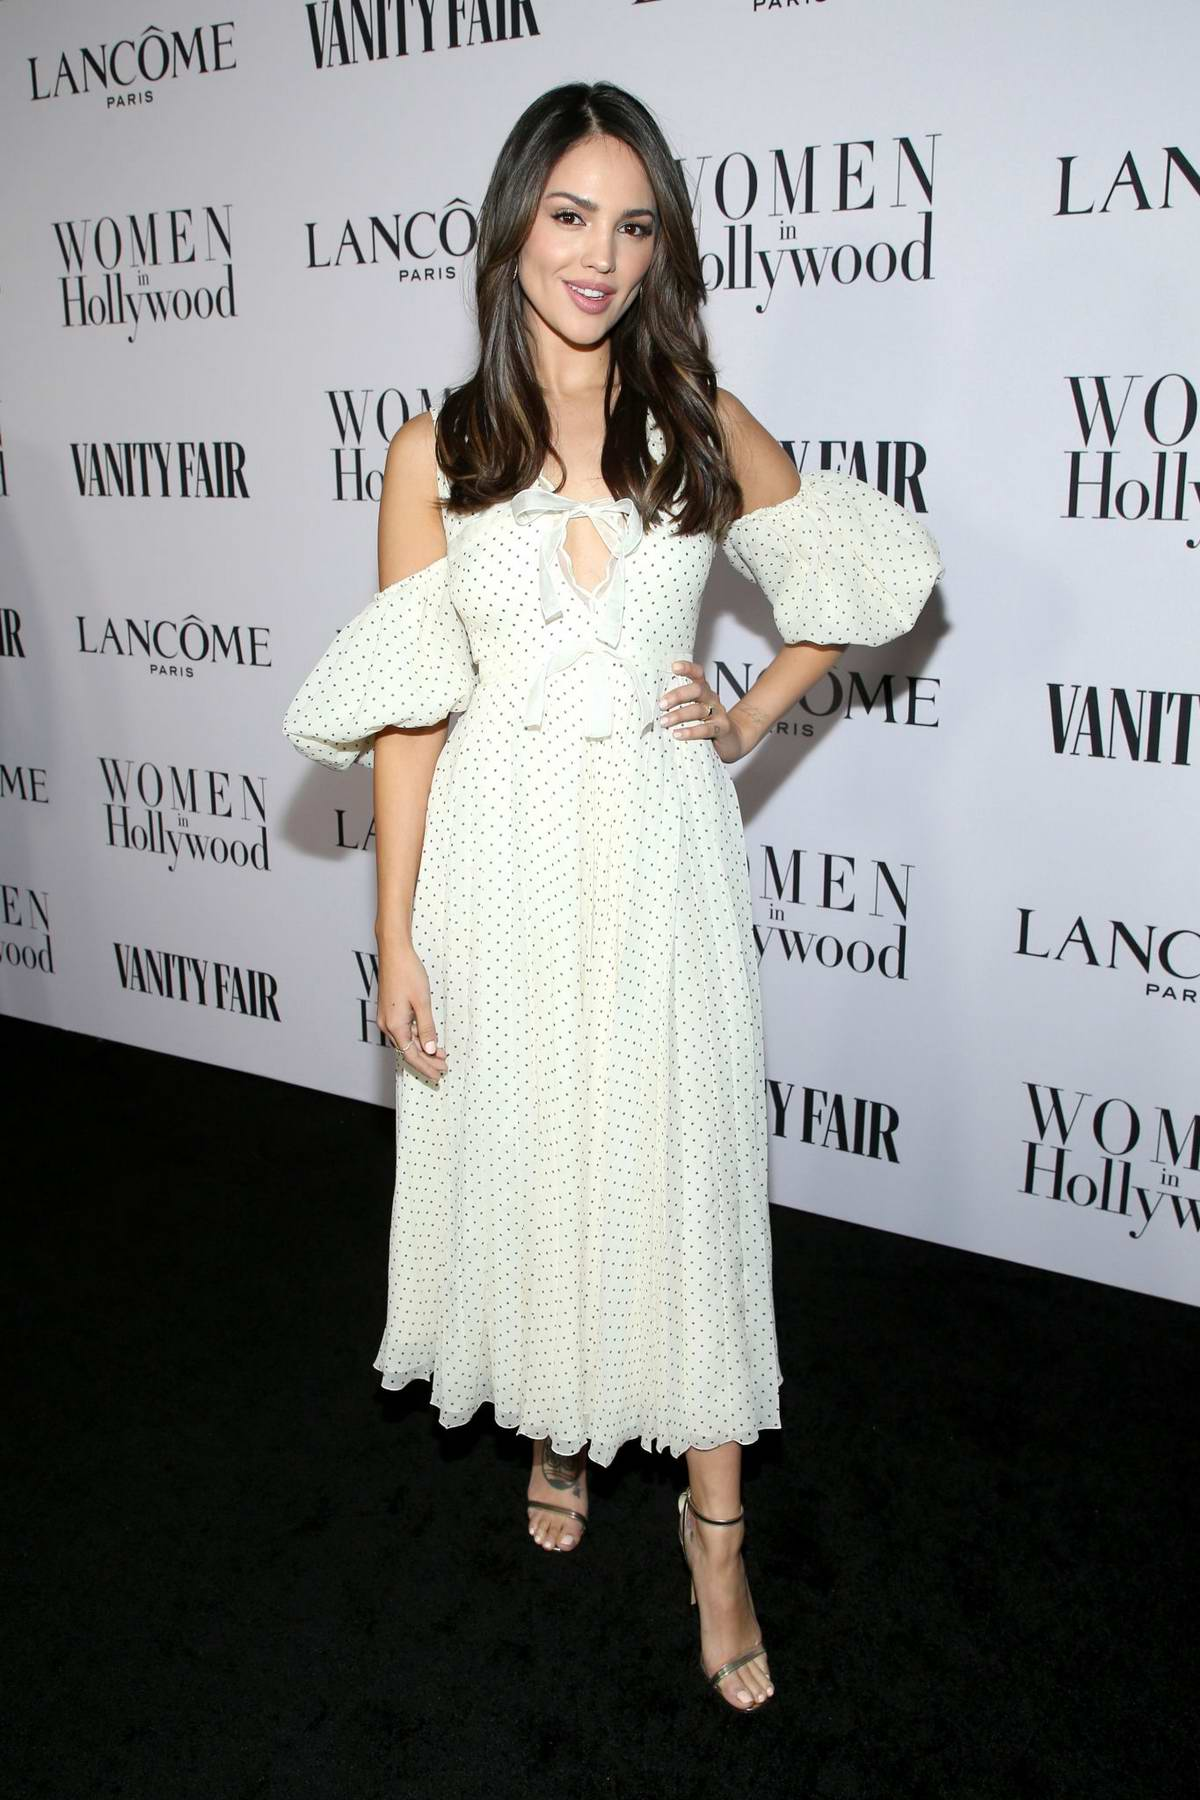 Eiza Gonzalez attends the Vanity Fair and Lancome Women in Hollywood Celebration in West Hollywood, California